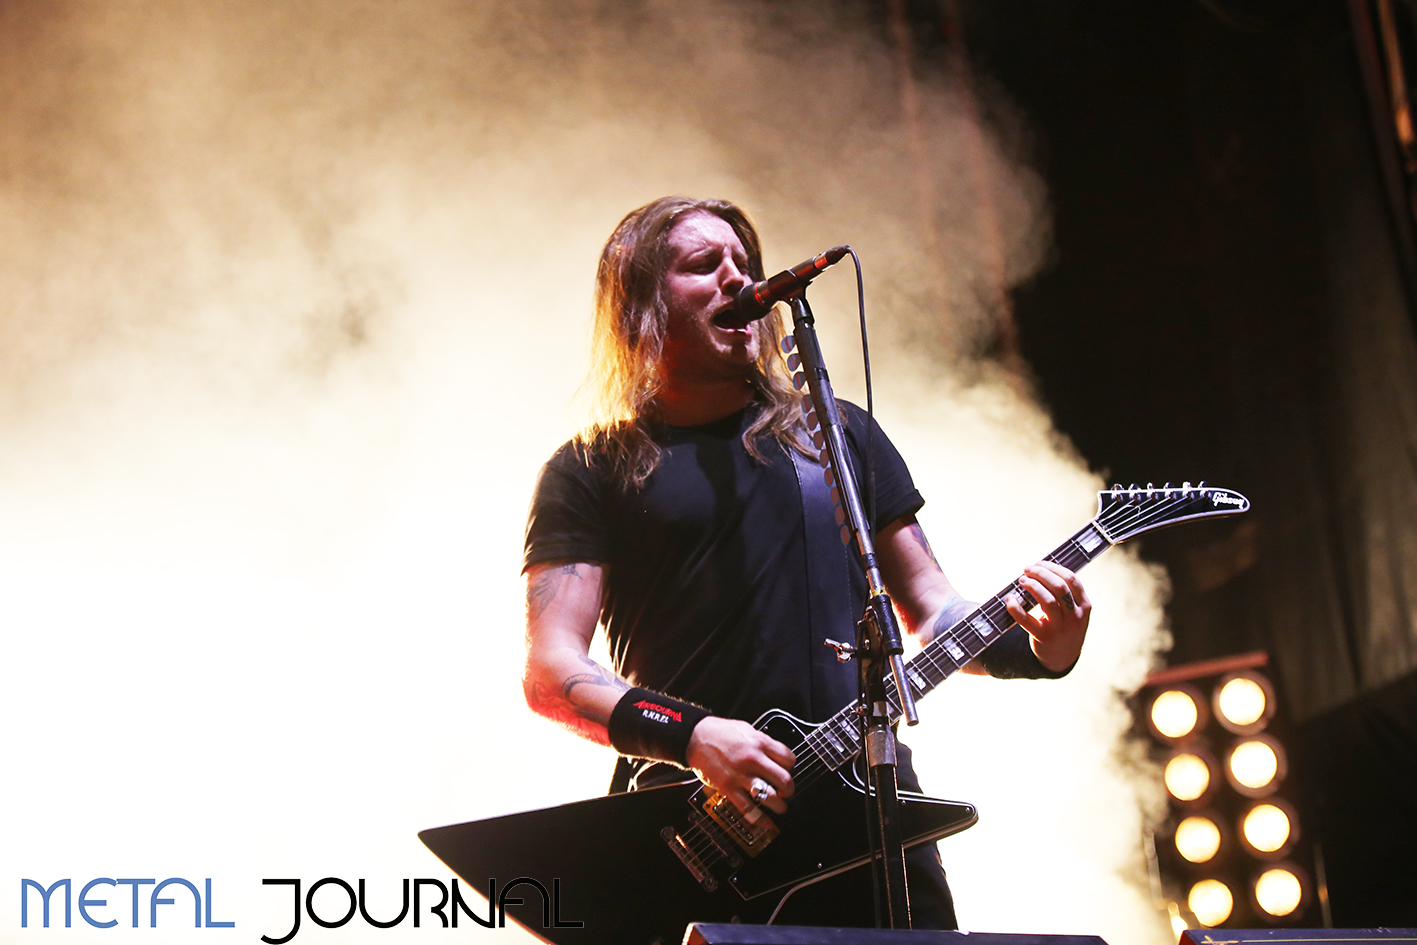 airbourne - leyendas del rock 2019 metal journal pic 13